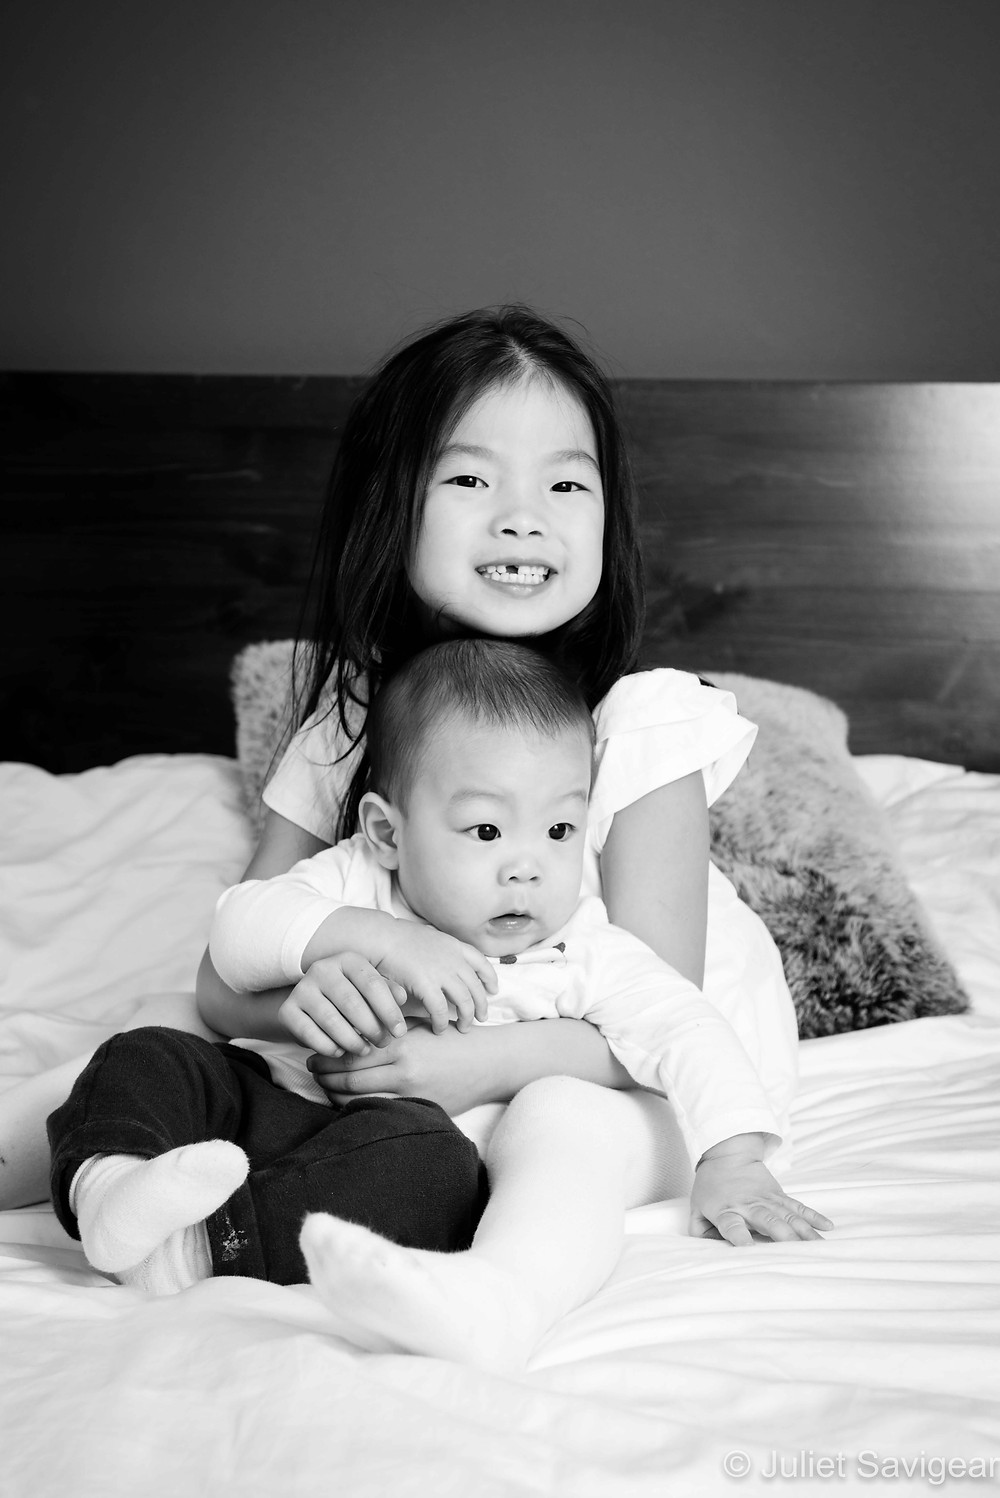 Big Sister - Children's Photography - Parsons Green